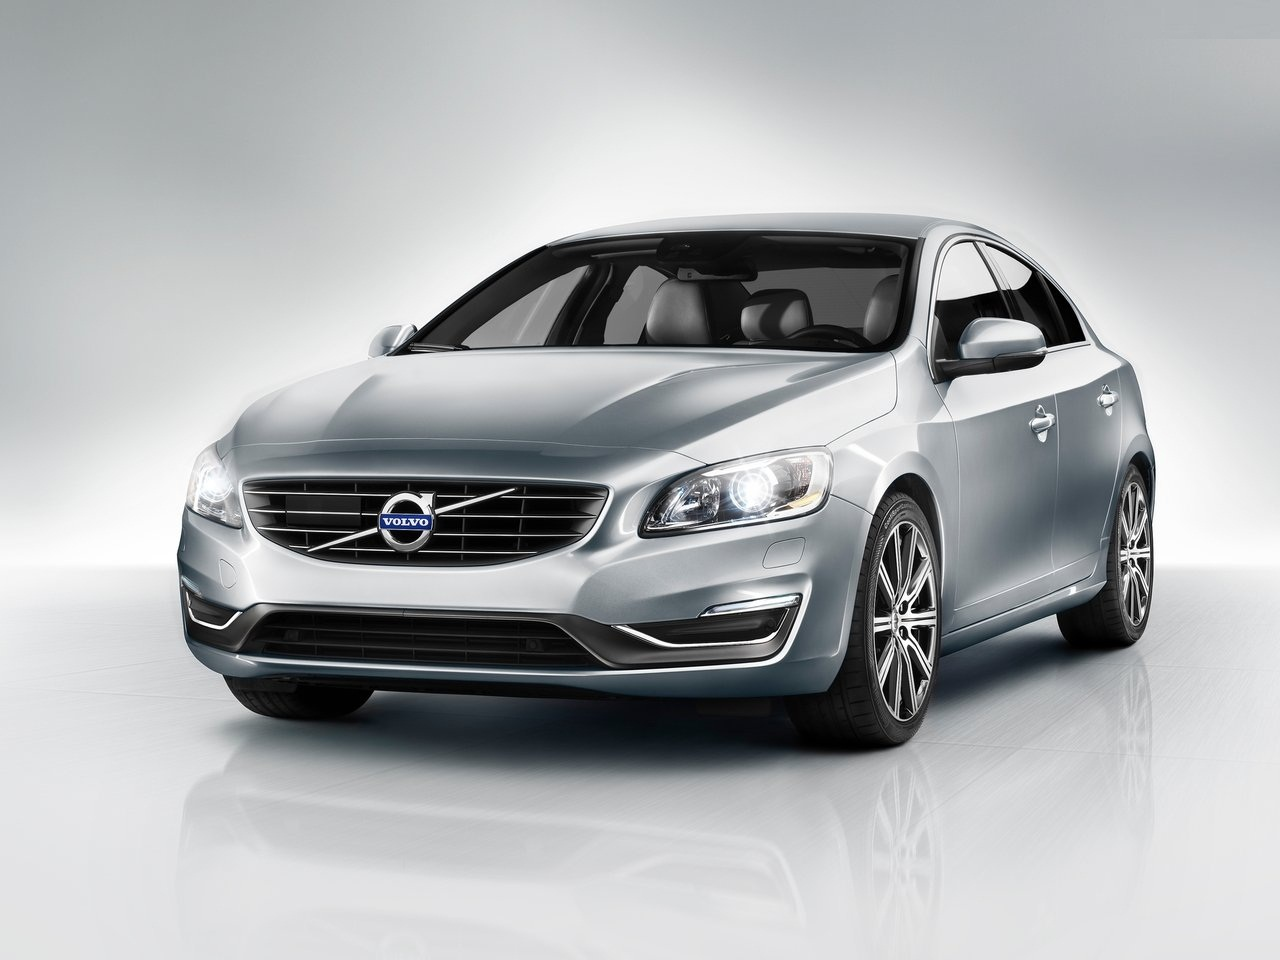 2014 Volvo S60   Wallpapers Pictures Pics Photos Images Desktop 1280x960